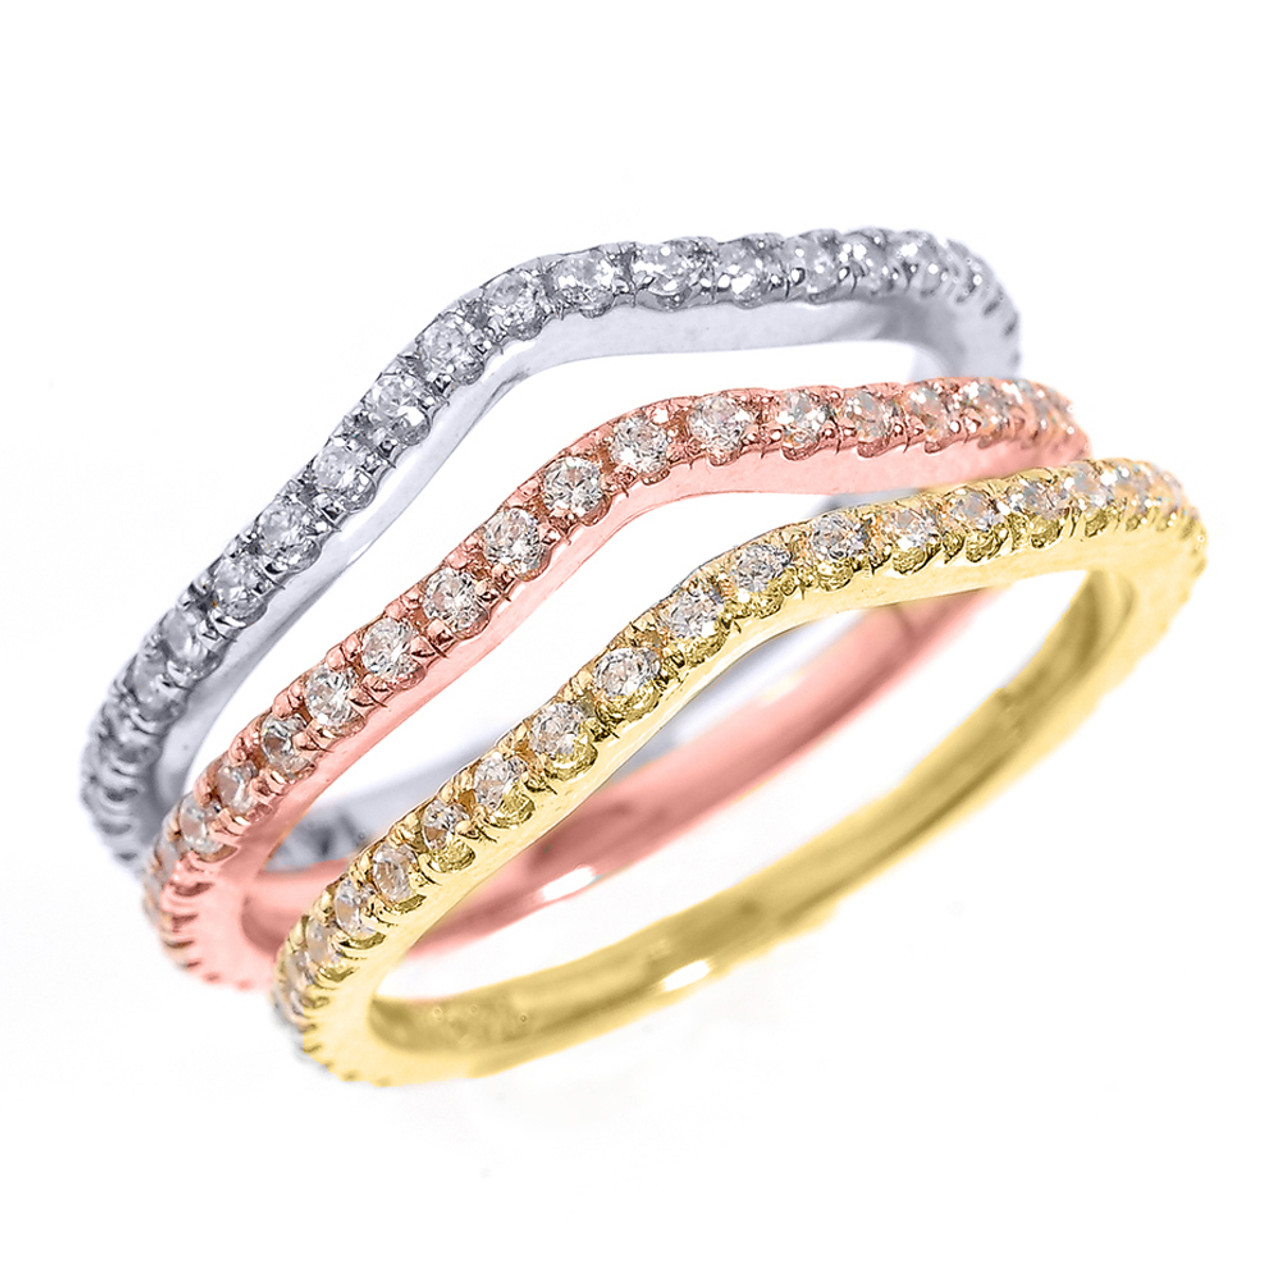 14k tri color gold chevron diamond stackable 3 piece wedding ring set - 3 Piece Wedding Ring Sets